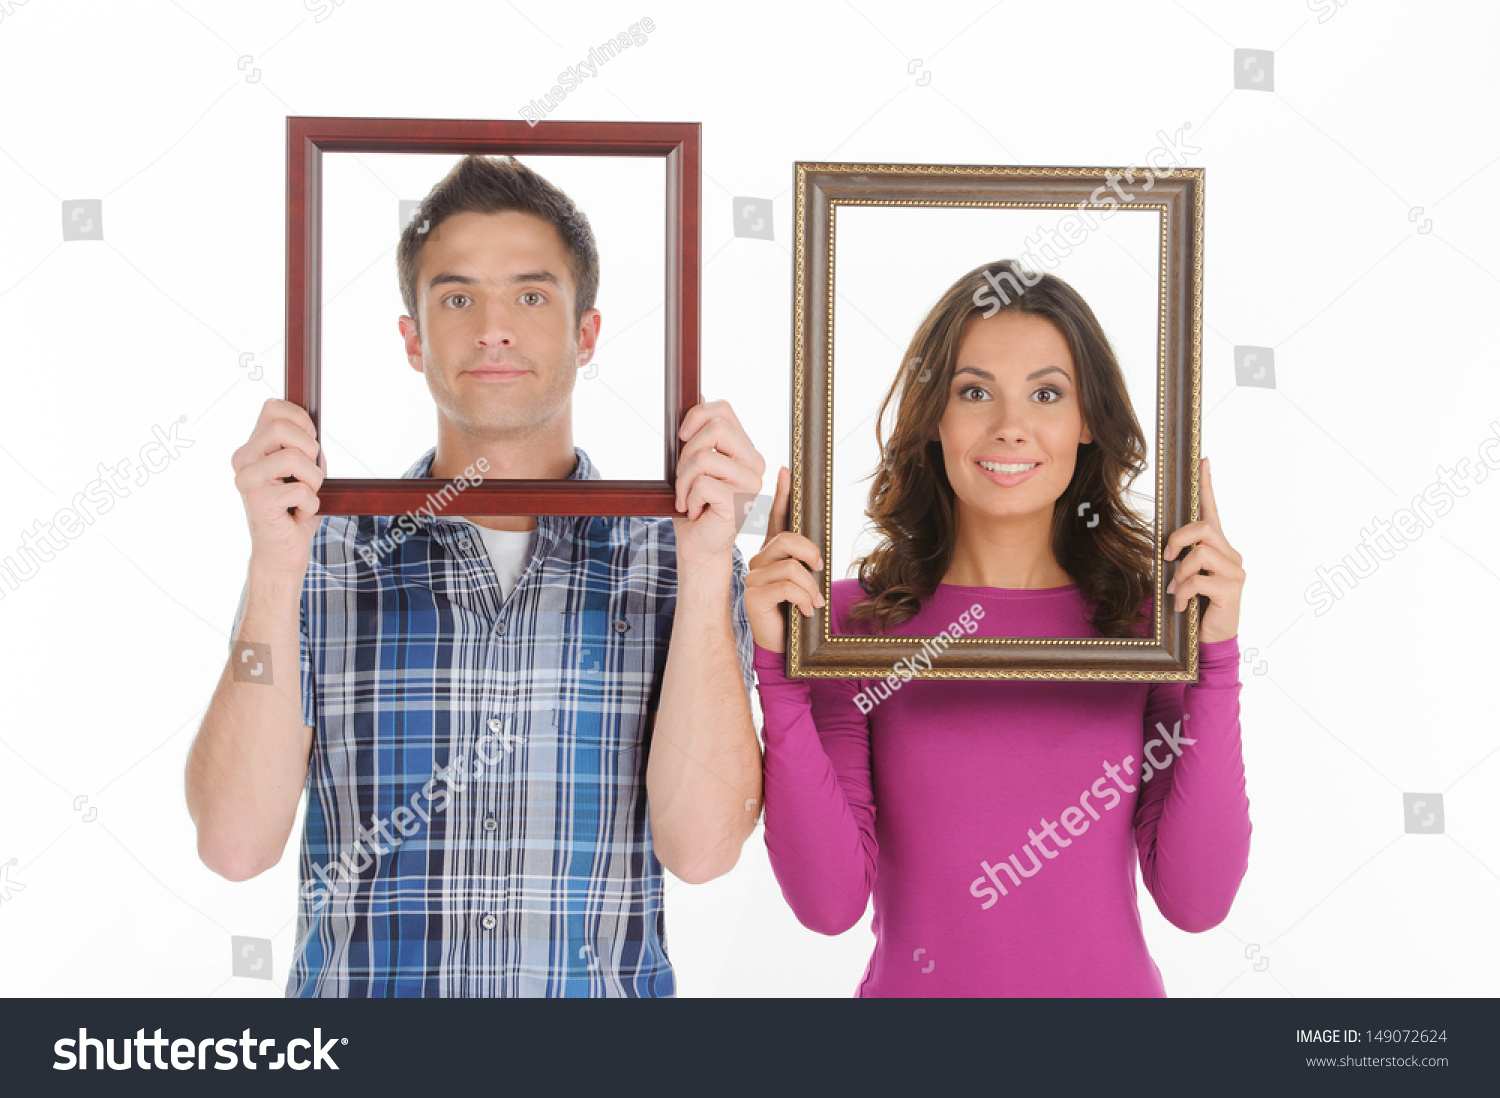 Couple picture frames beautiful young couple stock photo 149072624 couple picture frames beautiful young couple stock photo 149072624 shutterstock jeuxipadfo Choice Image